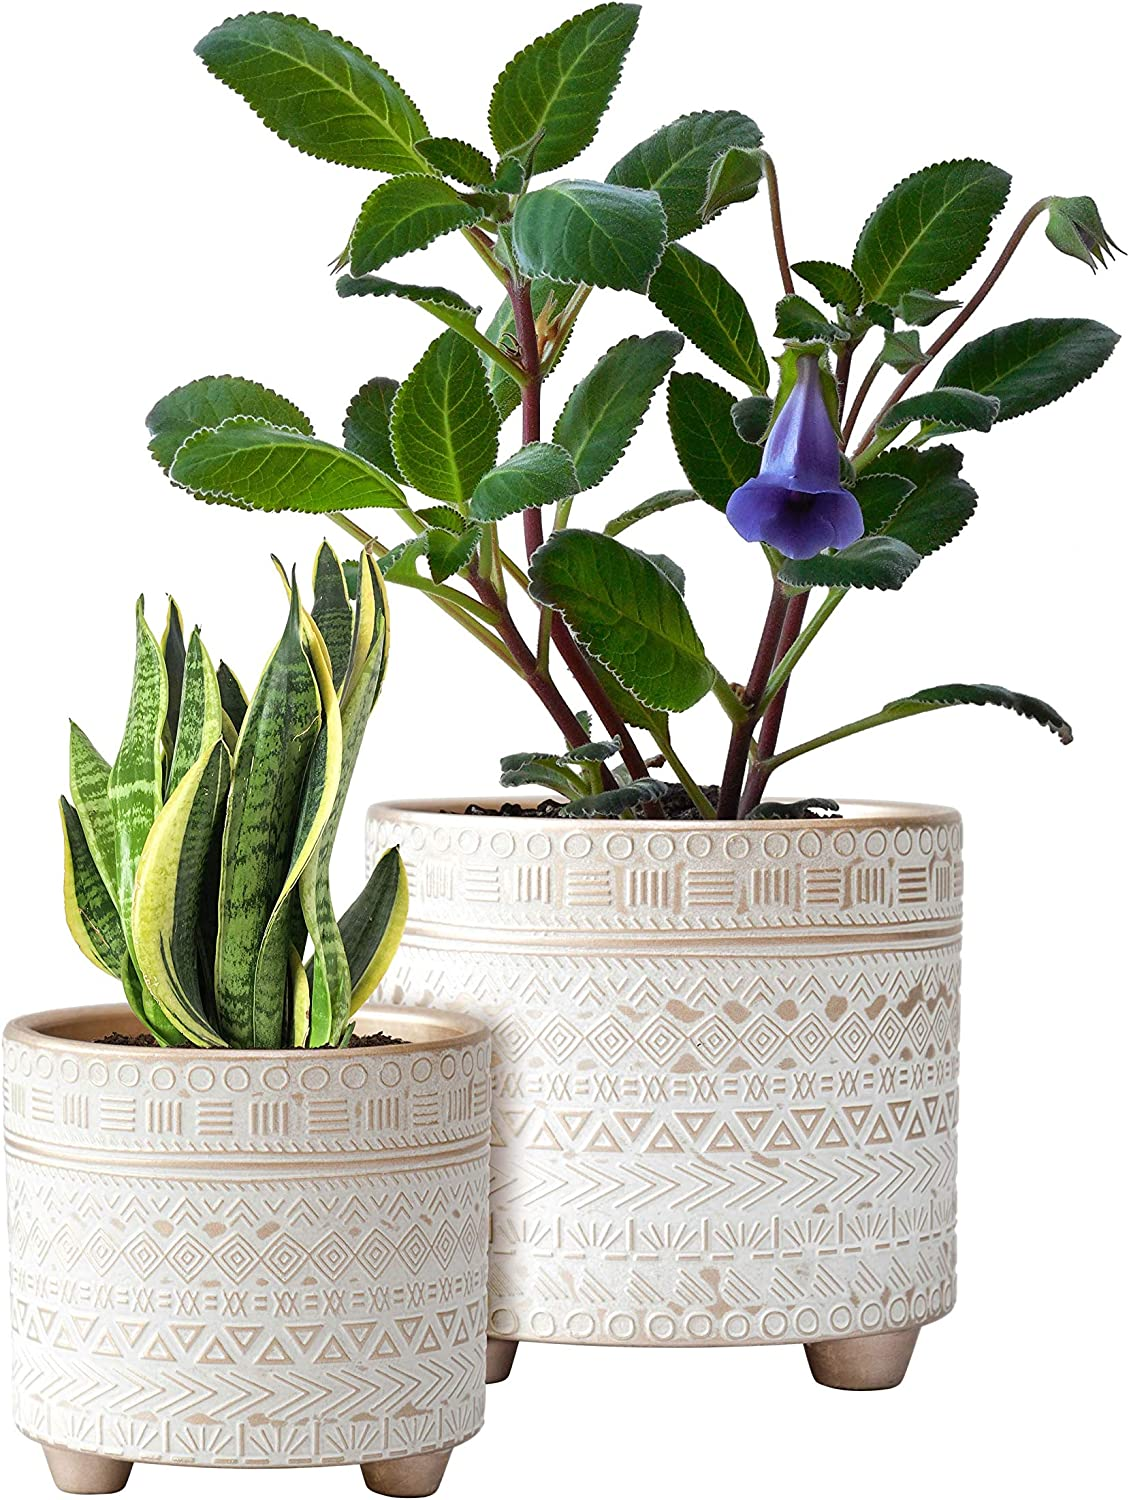 Set of 2 Planter Pots, 4 Inch & 6 Inch, Geometric Design Ceramic Plants Pot with Drainage Hole, Gold/White